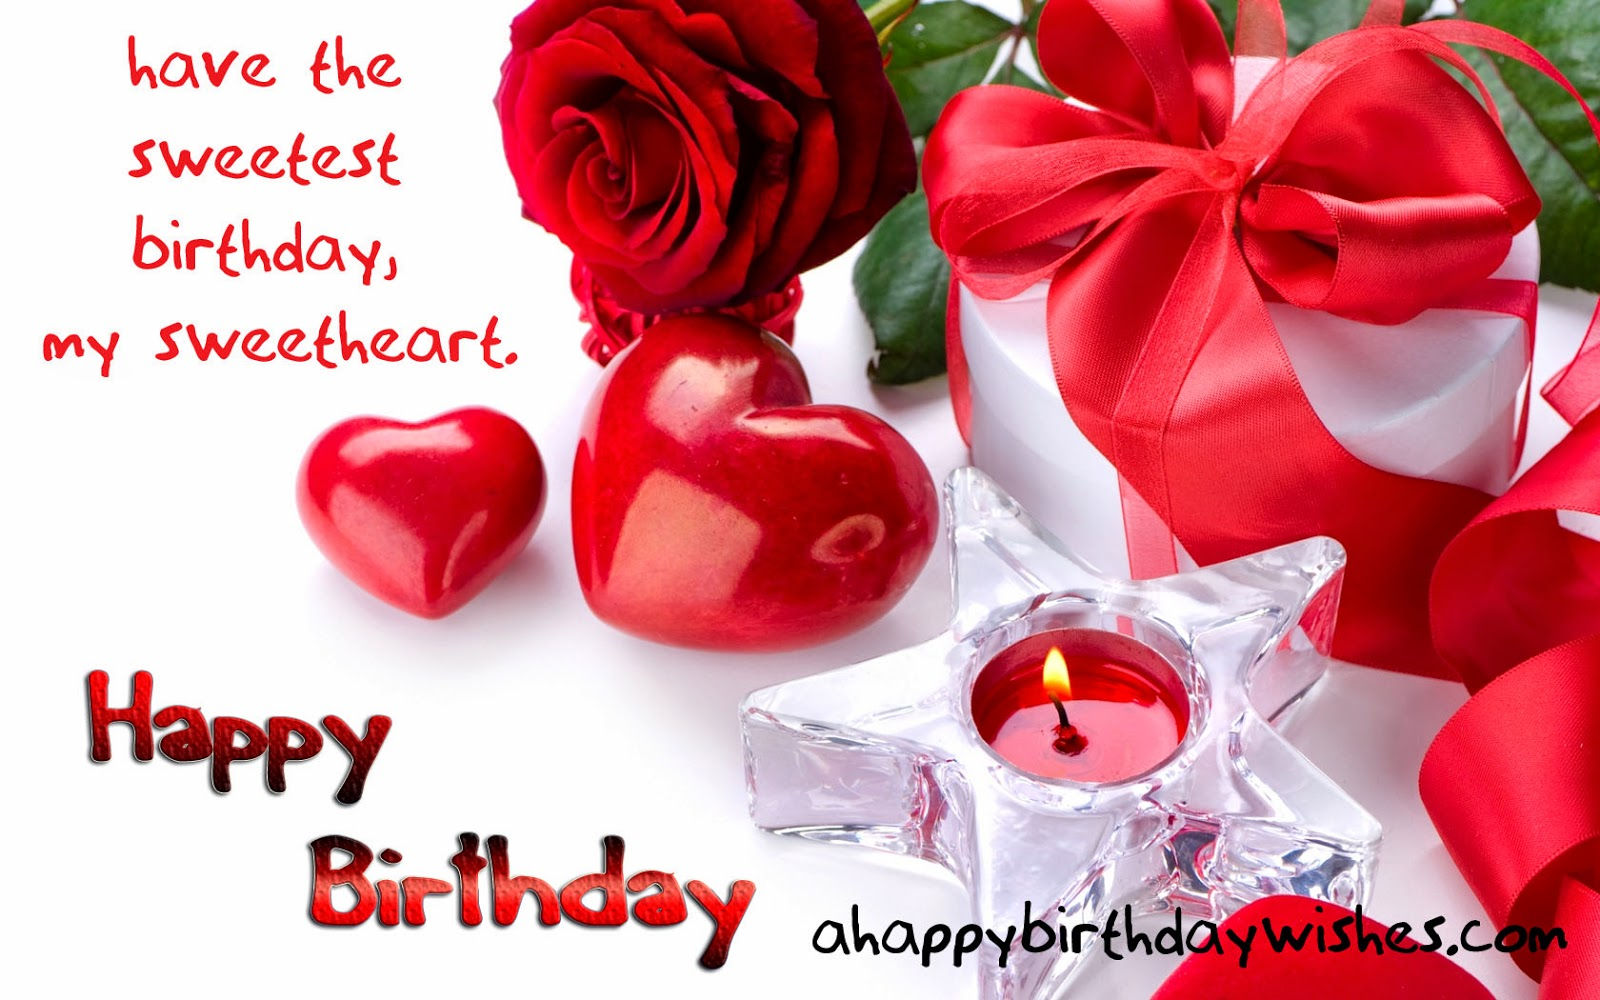 romantic birthday greeting cards for lover ; heartfelt-birthday-wishes-that-can-express-your-love-to-girlfriend-on-her-birthday-1